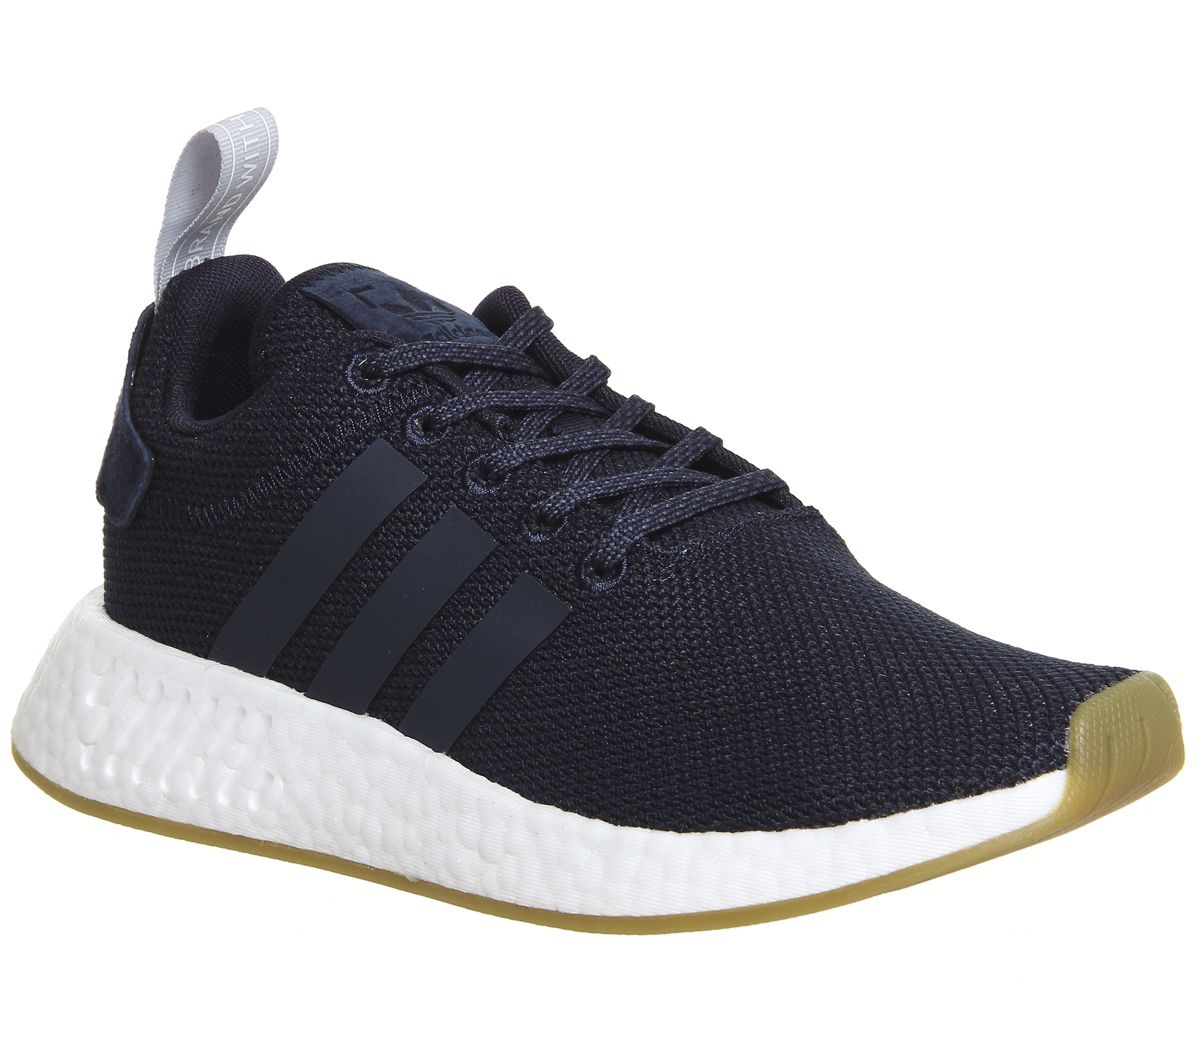 official photos 7b413 6b272 adidas Nmd R2 Trainers Legend Ink Grey Two - Hers trainers